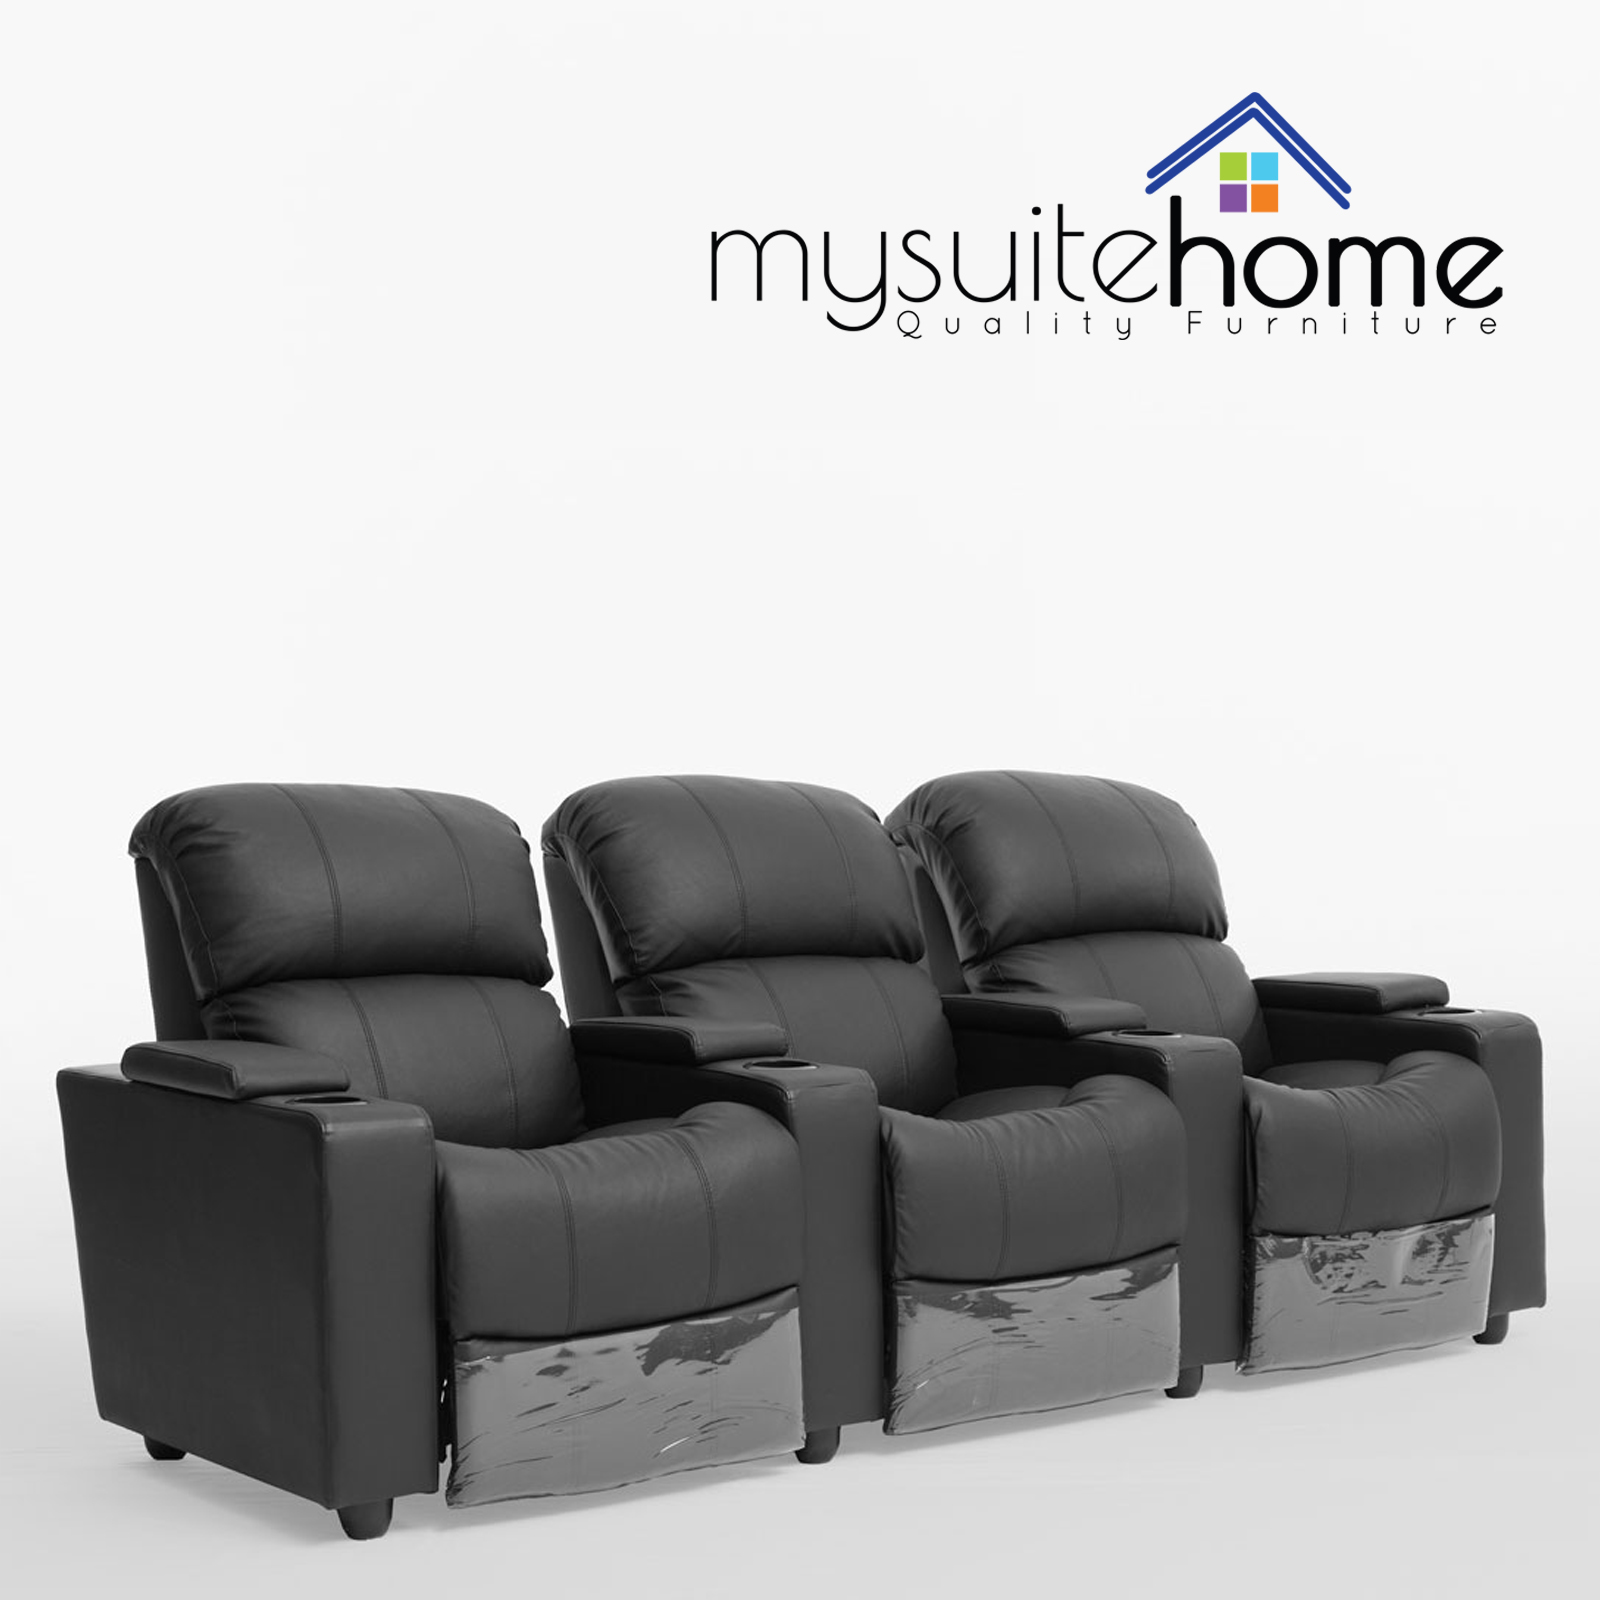 Sophie Leather 3 Seater Home Theatre Recliner Sofa Lounge With Cup  ~ Entertainment Sofa Furniture